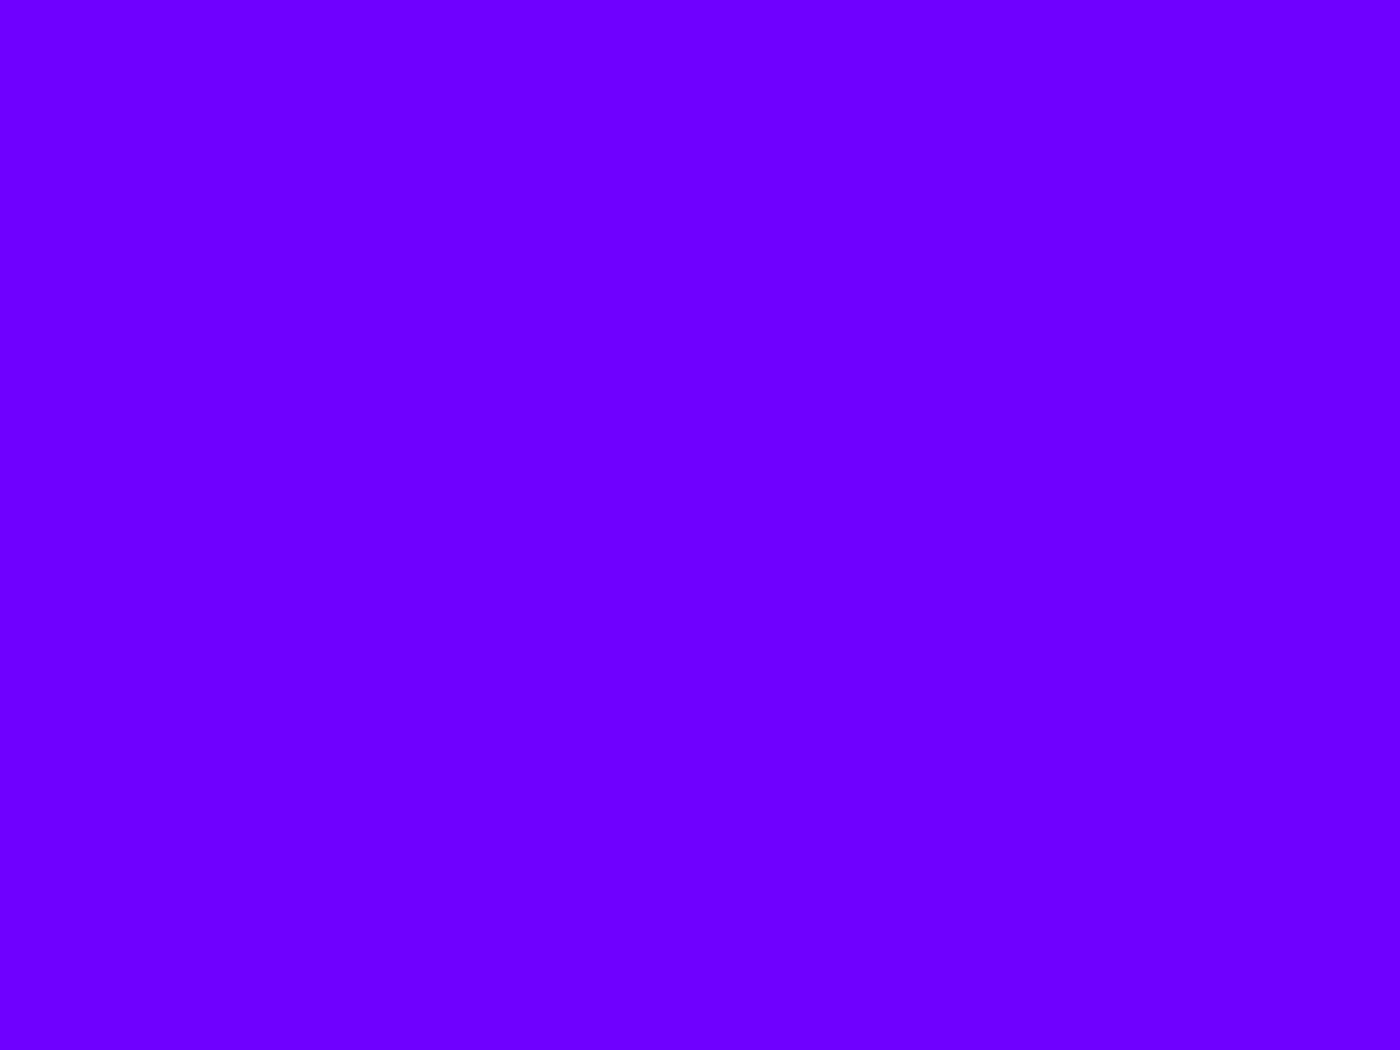 1400x1050 Electric Indigo Solid Color Background